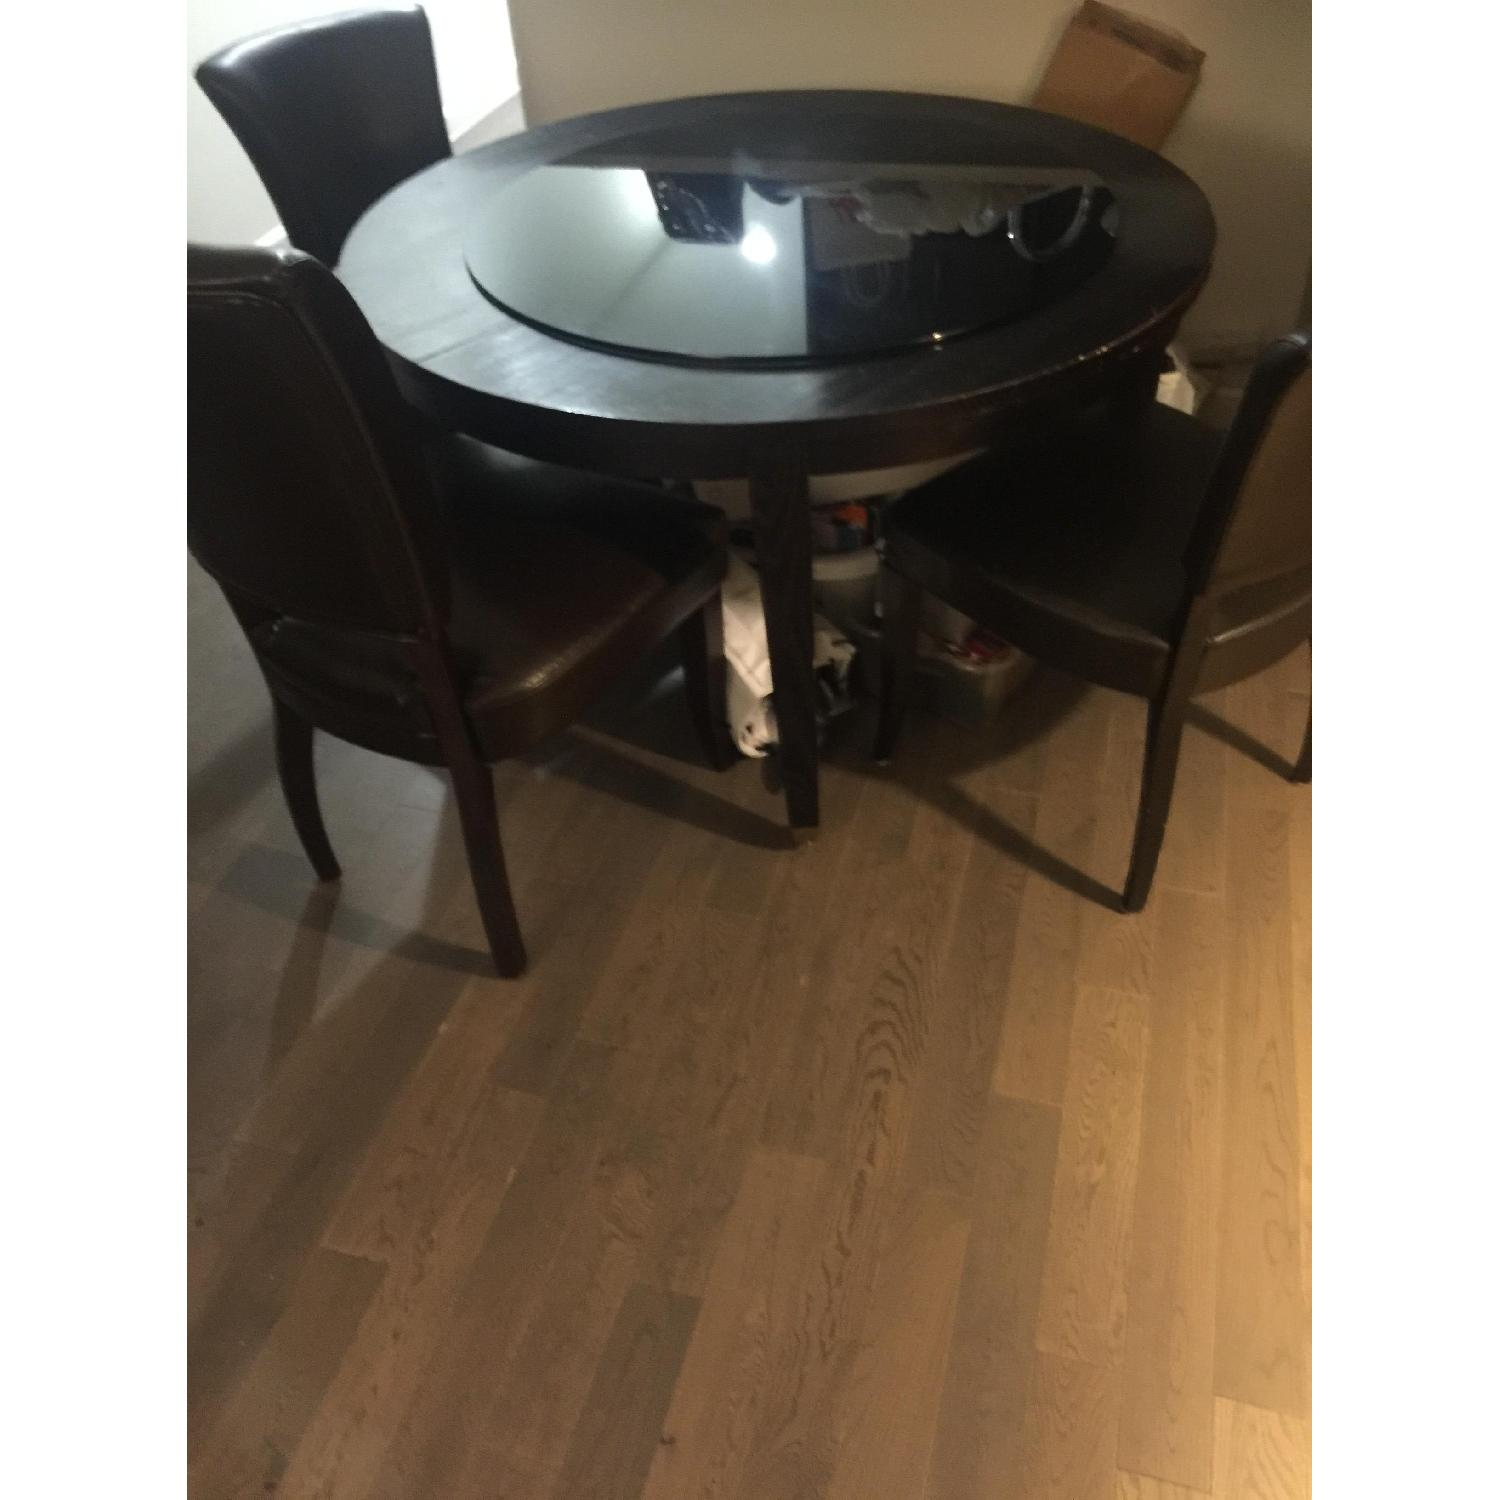 Crate & Barrel Black Ash Extendable Dining Table w/ 3 Chairs - image-4